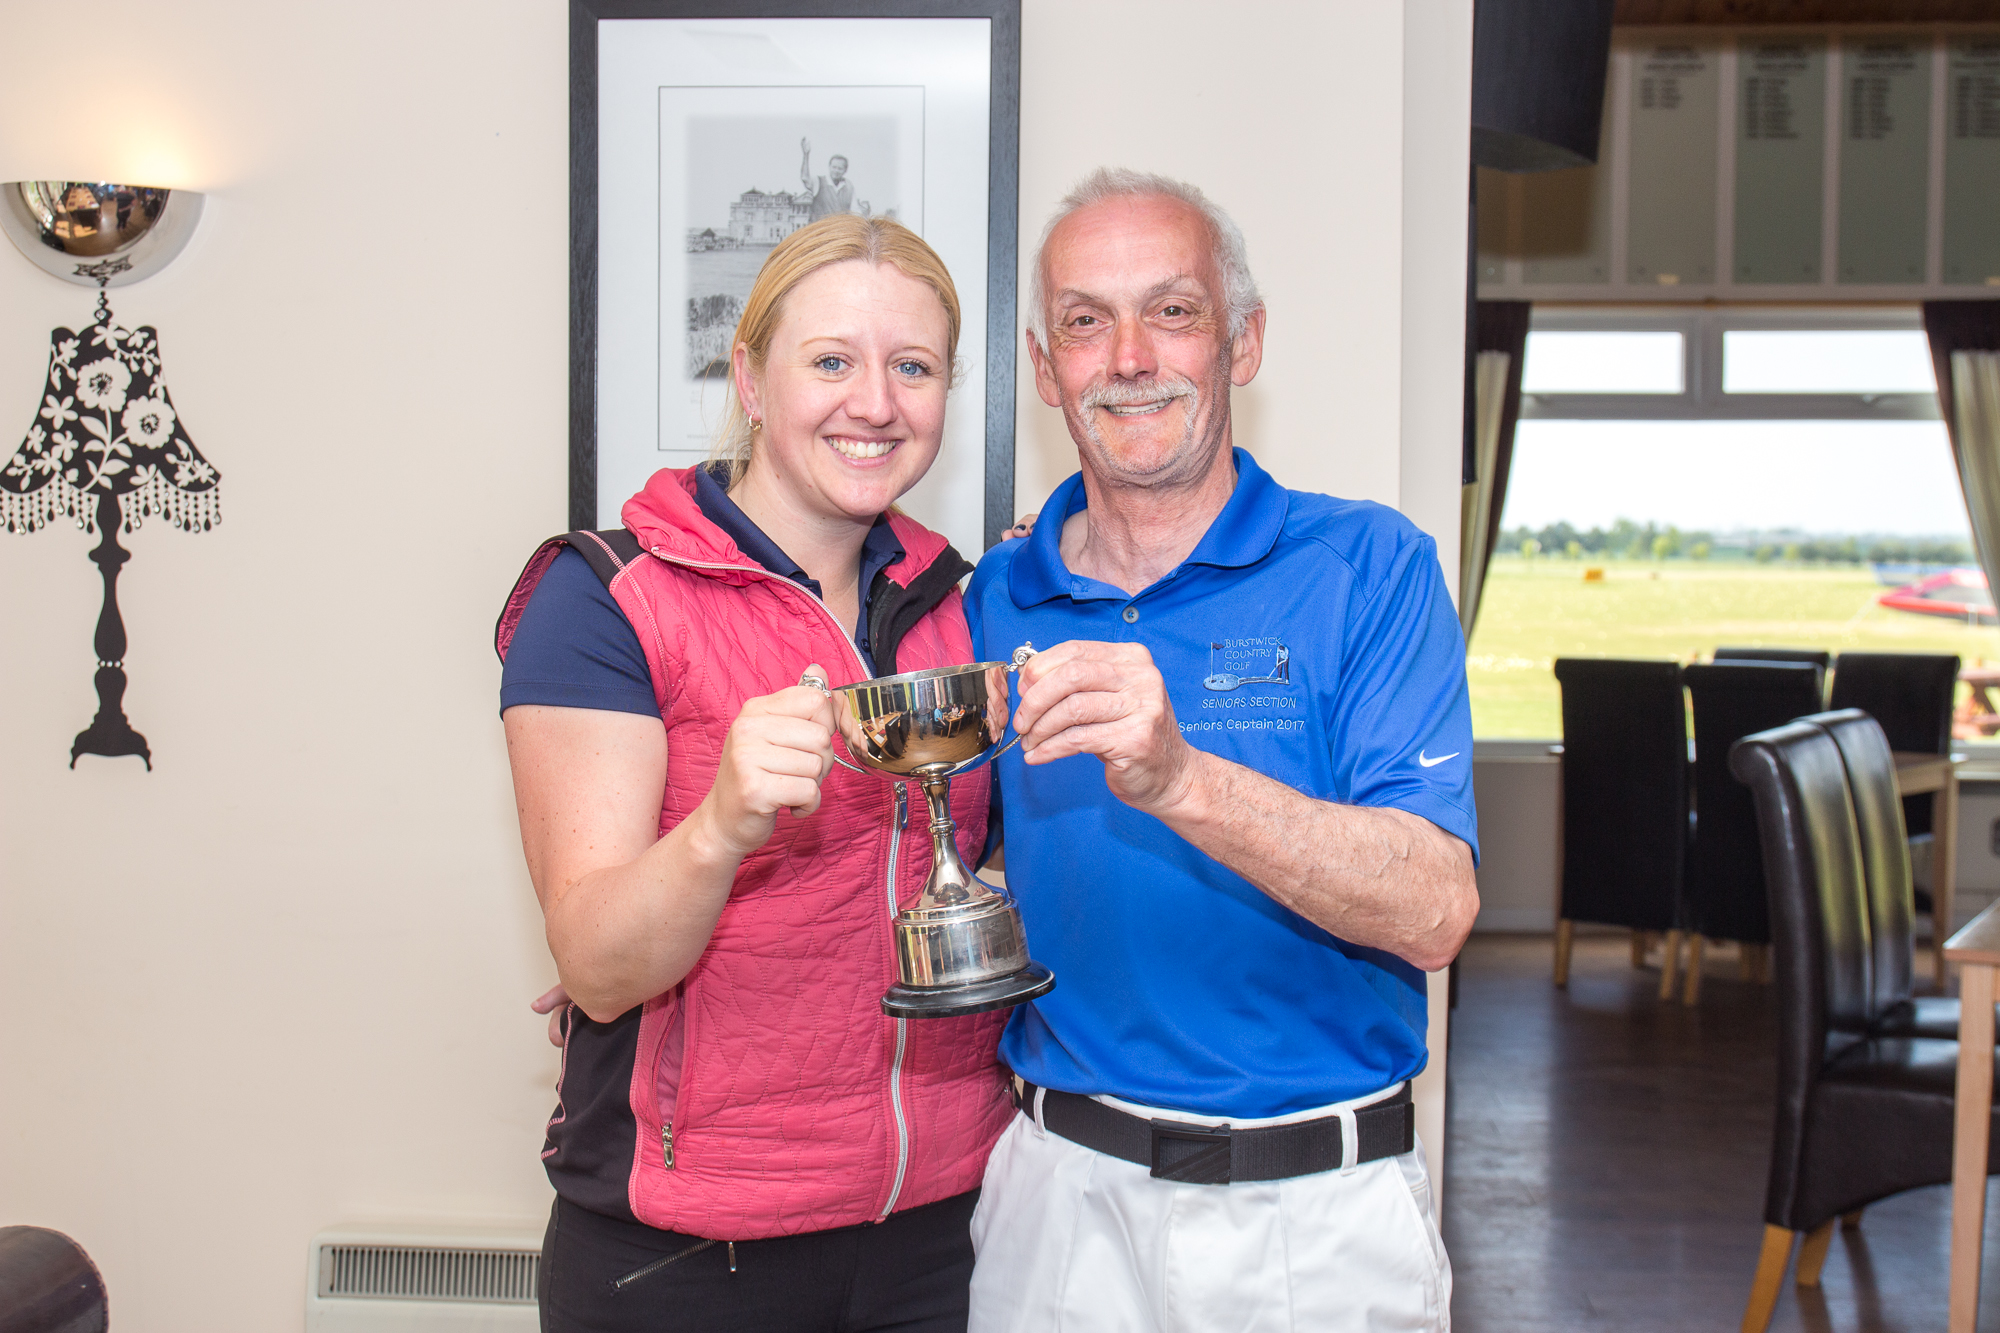 Winners Laura Key and Andy Steward